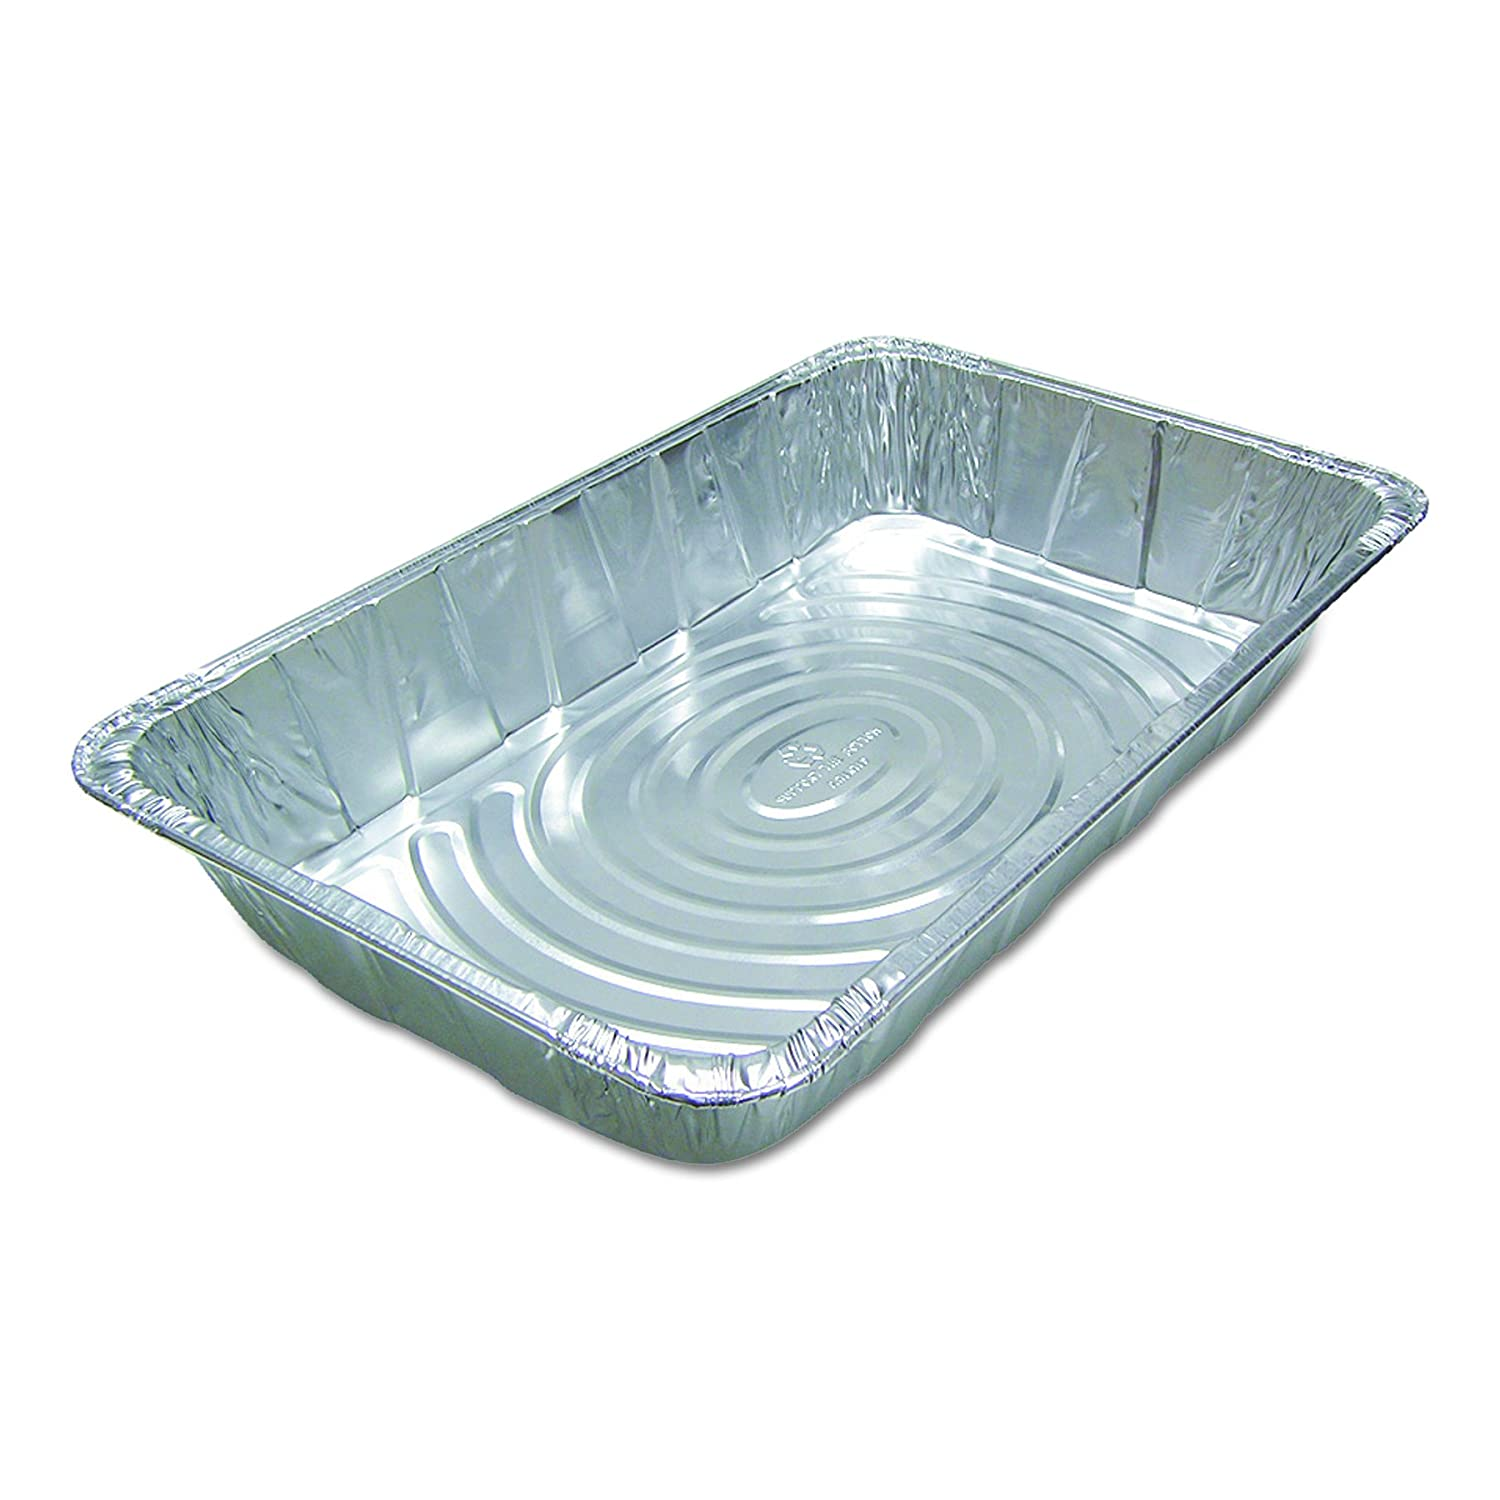 Pactiv Y6050XH Ribbed Full Size Aluminum Steam Pans, 20 3/4 x 12 3/16 x 3 3/8 (Case of 40)